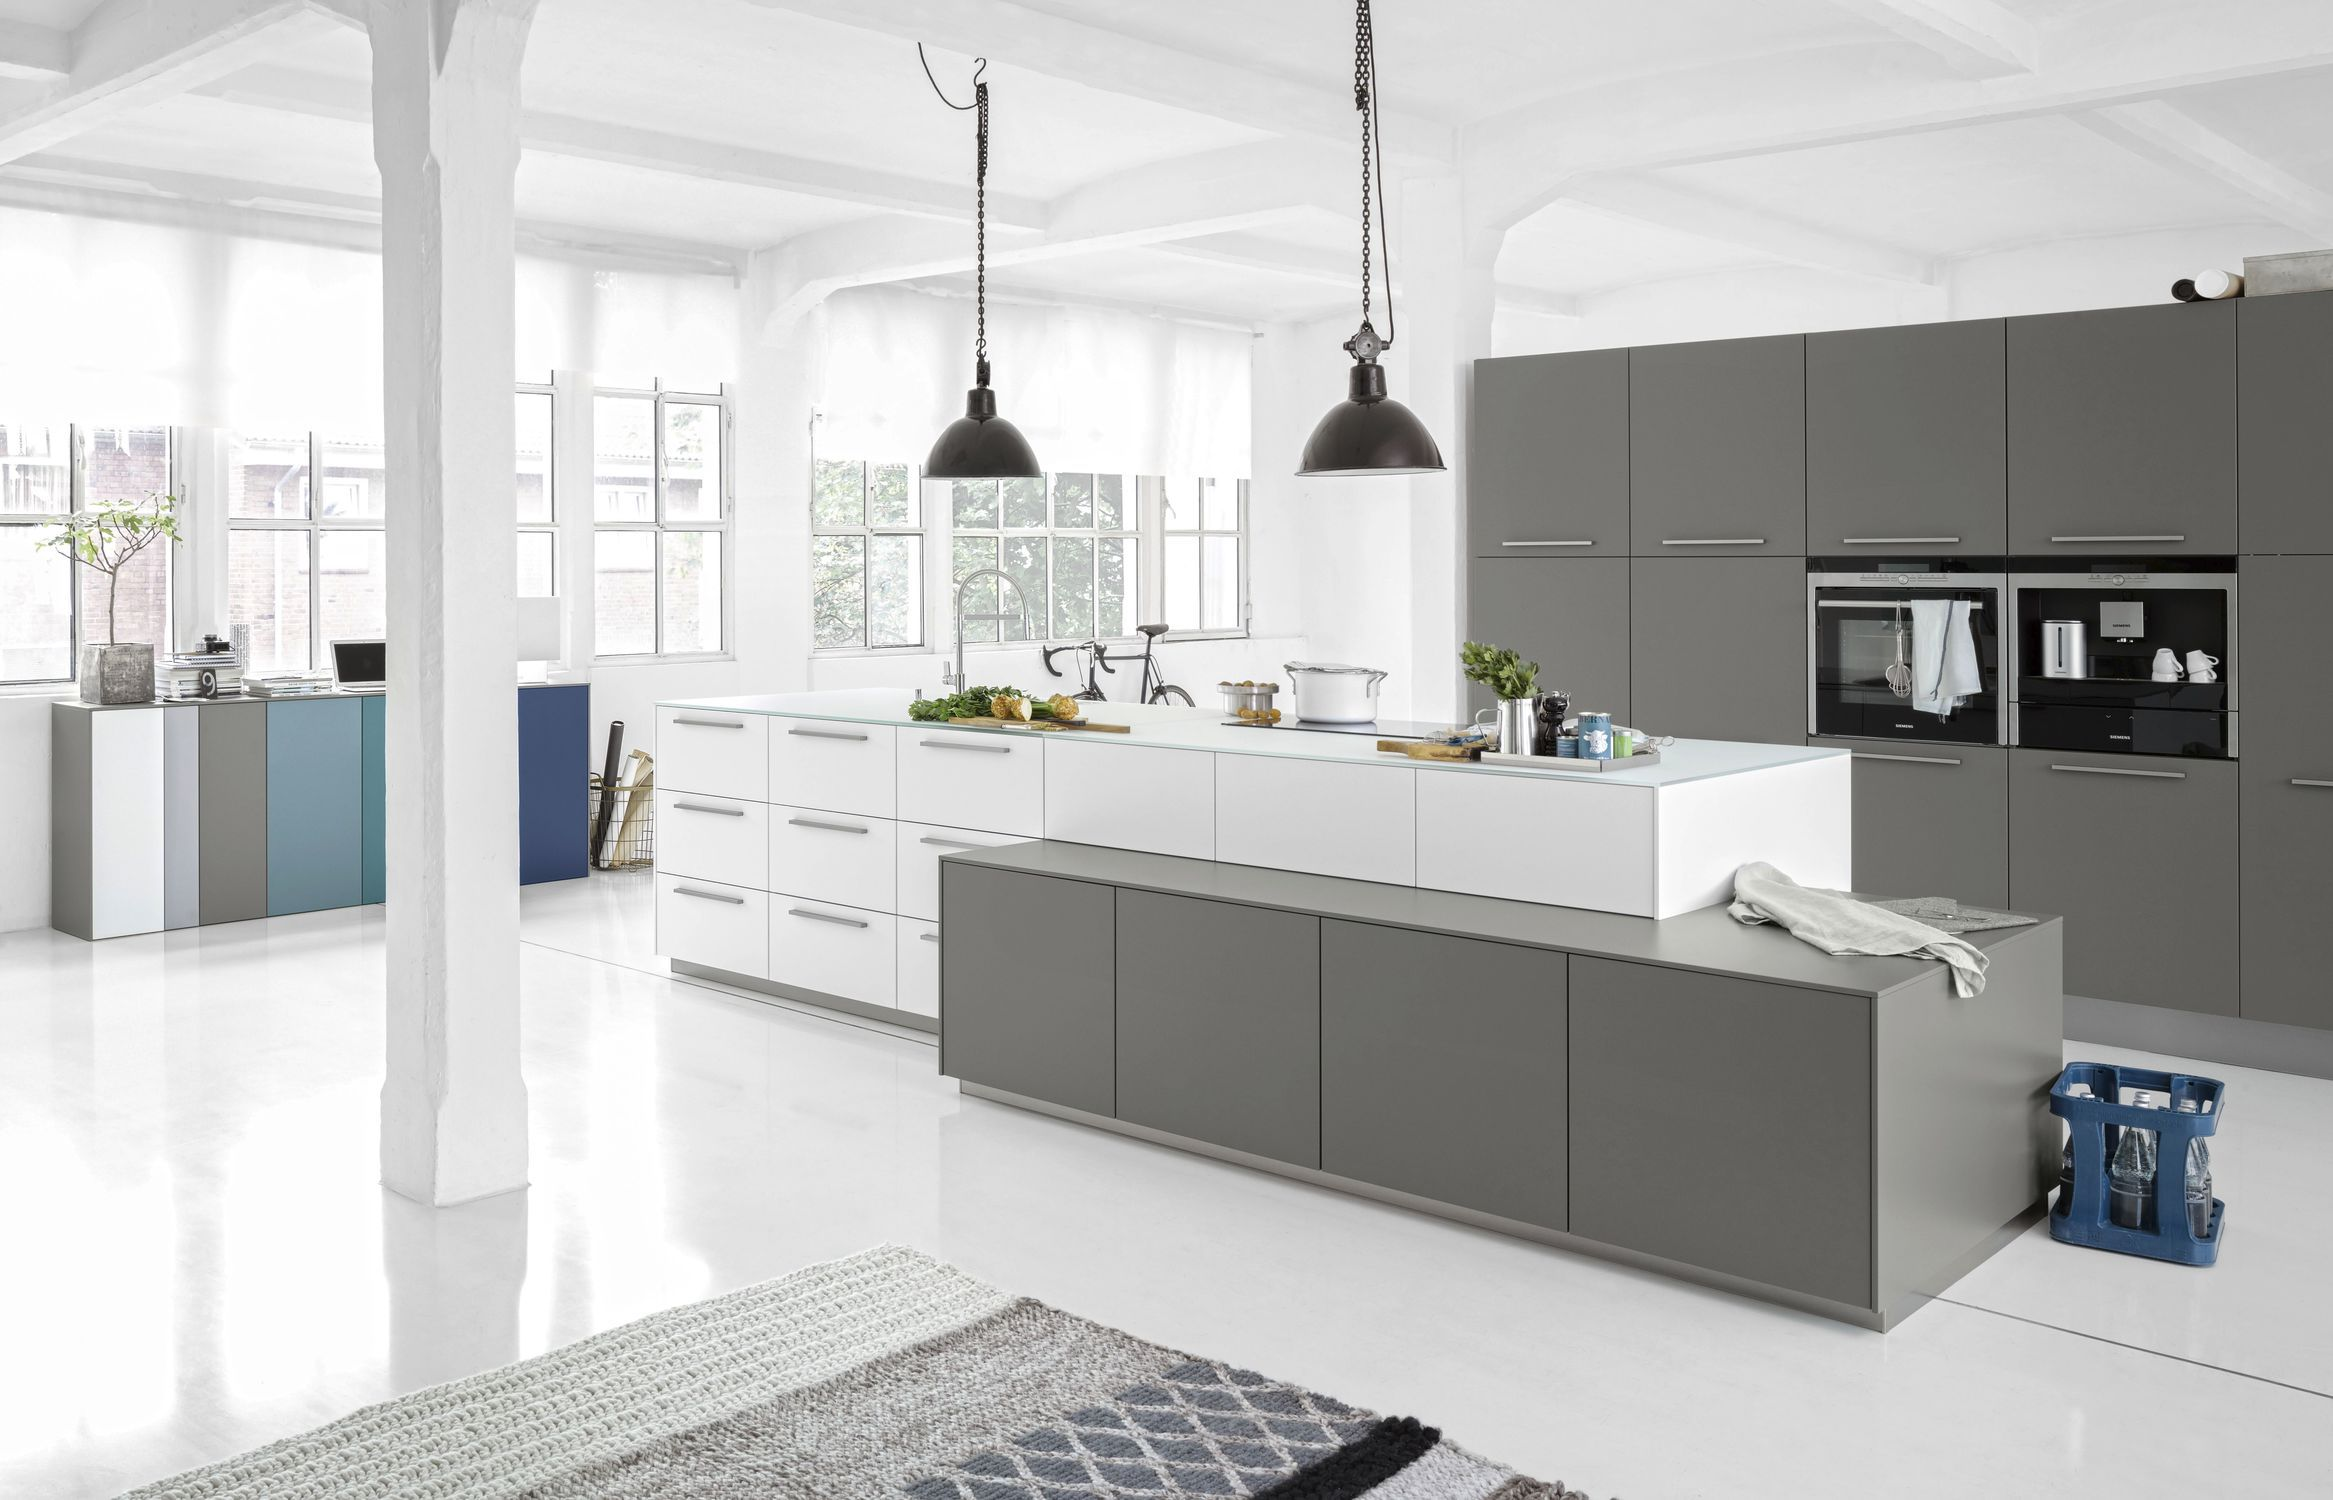 Hervorragend Contemporary Kitchen / Lacquered Wood / Glass / Island